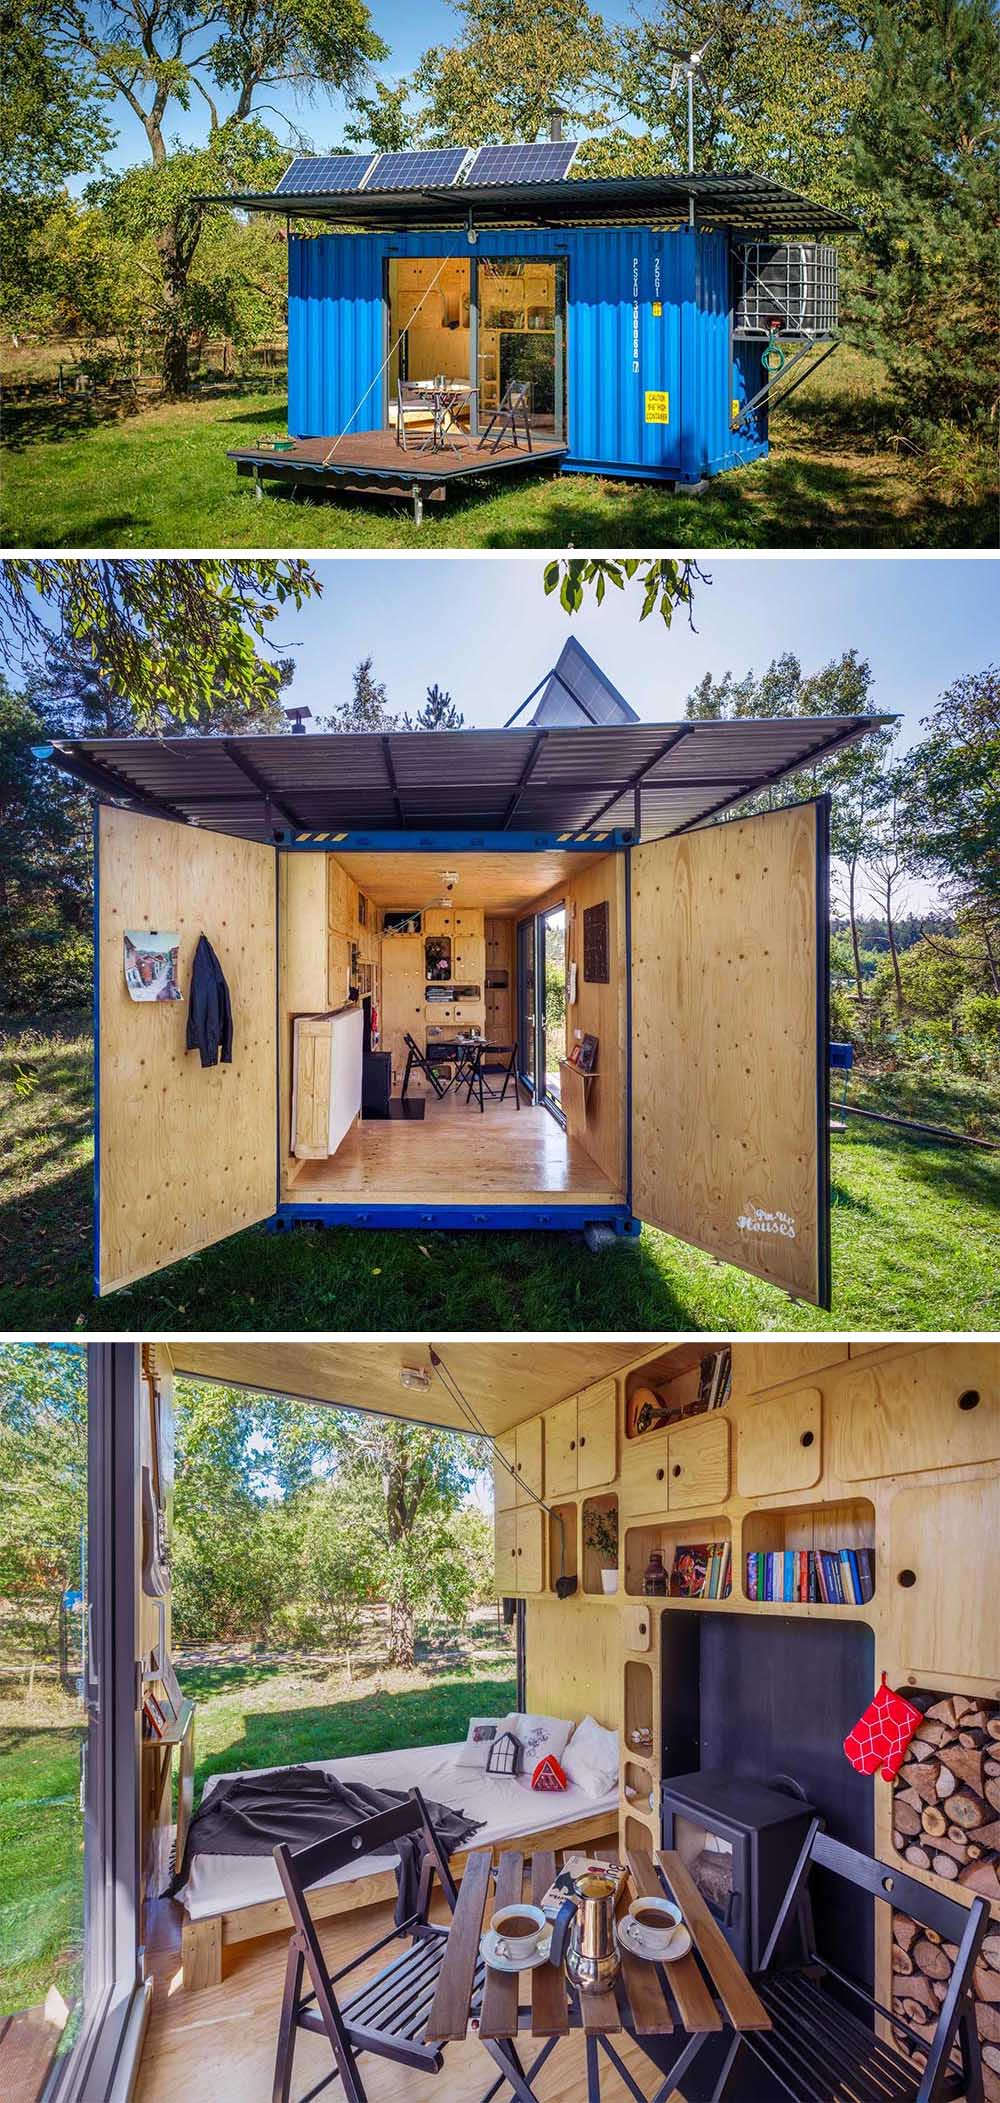 Design studio Pin-Up Houses has designed a tiny house that measures in at just 20ft x 8ft and is made from a small shipping container.